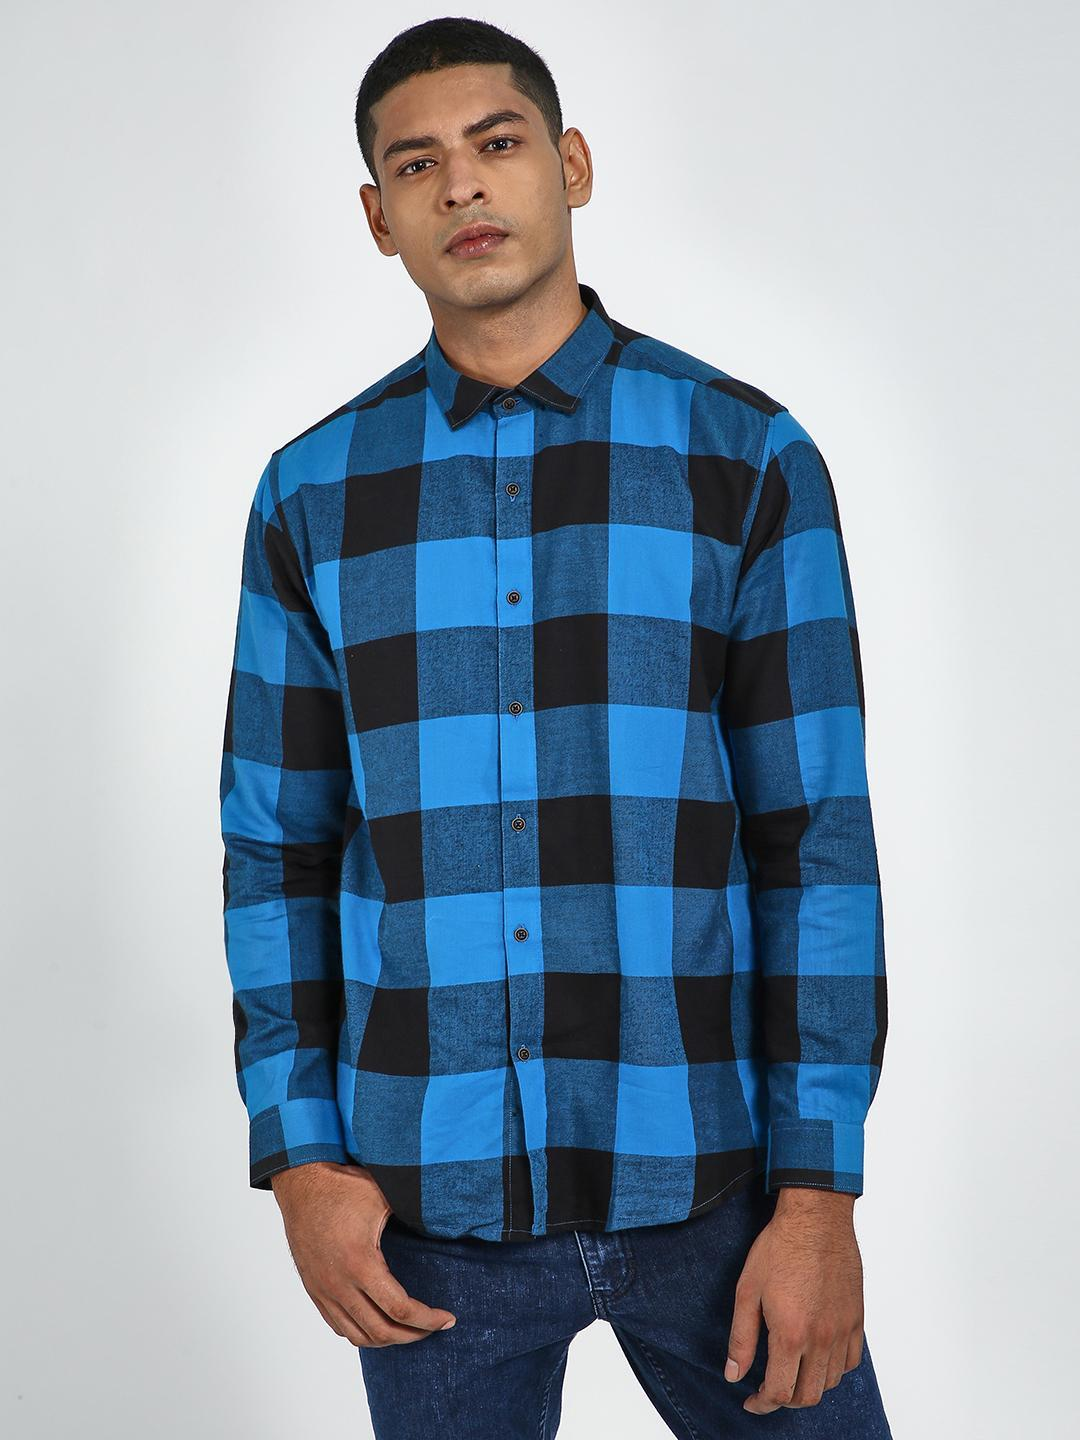 Green Hill BLUE/BLACK  Checkered Long Sleeve Shirt 1